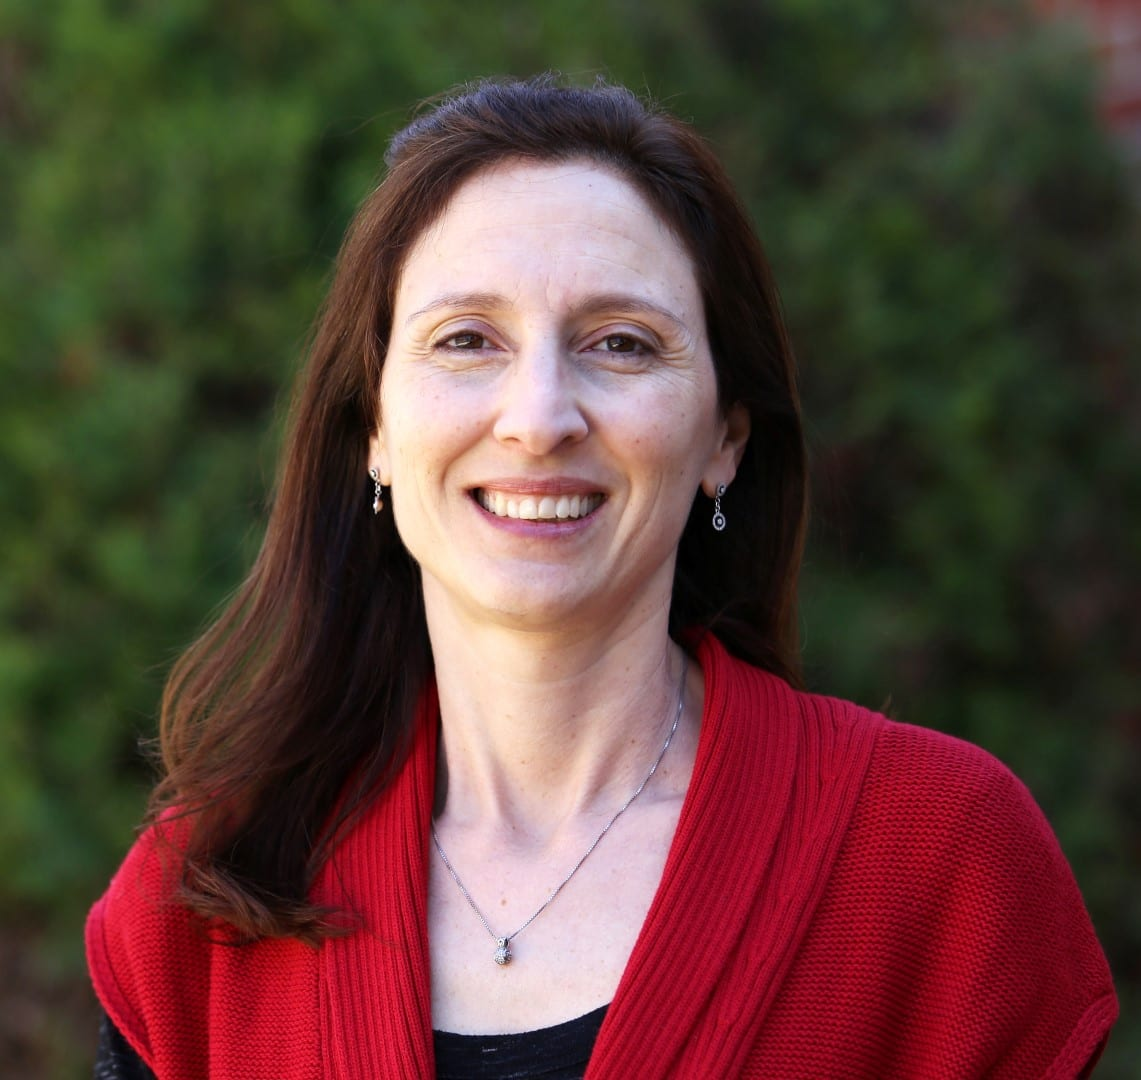 New Upper School Director Meredith Hanamirian